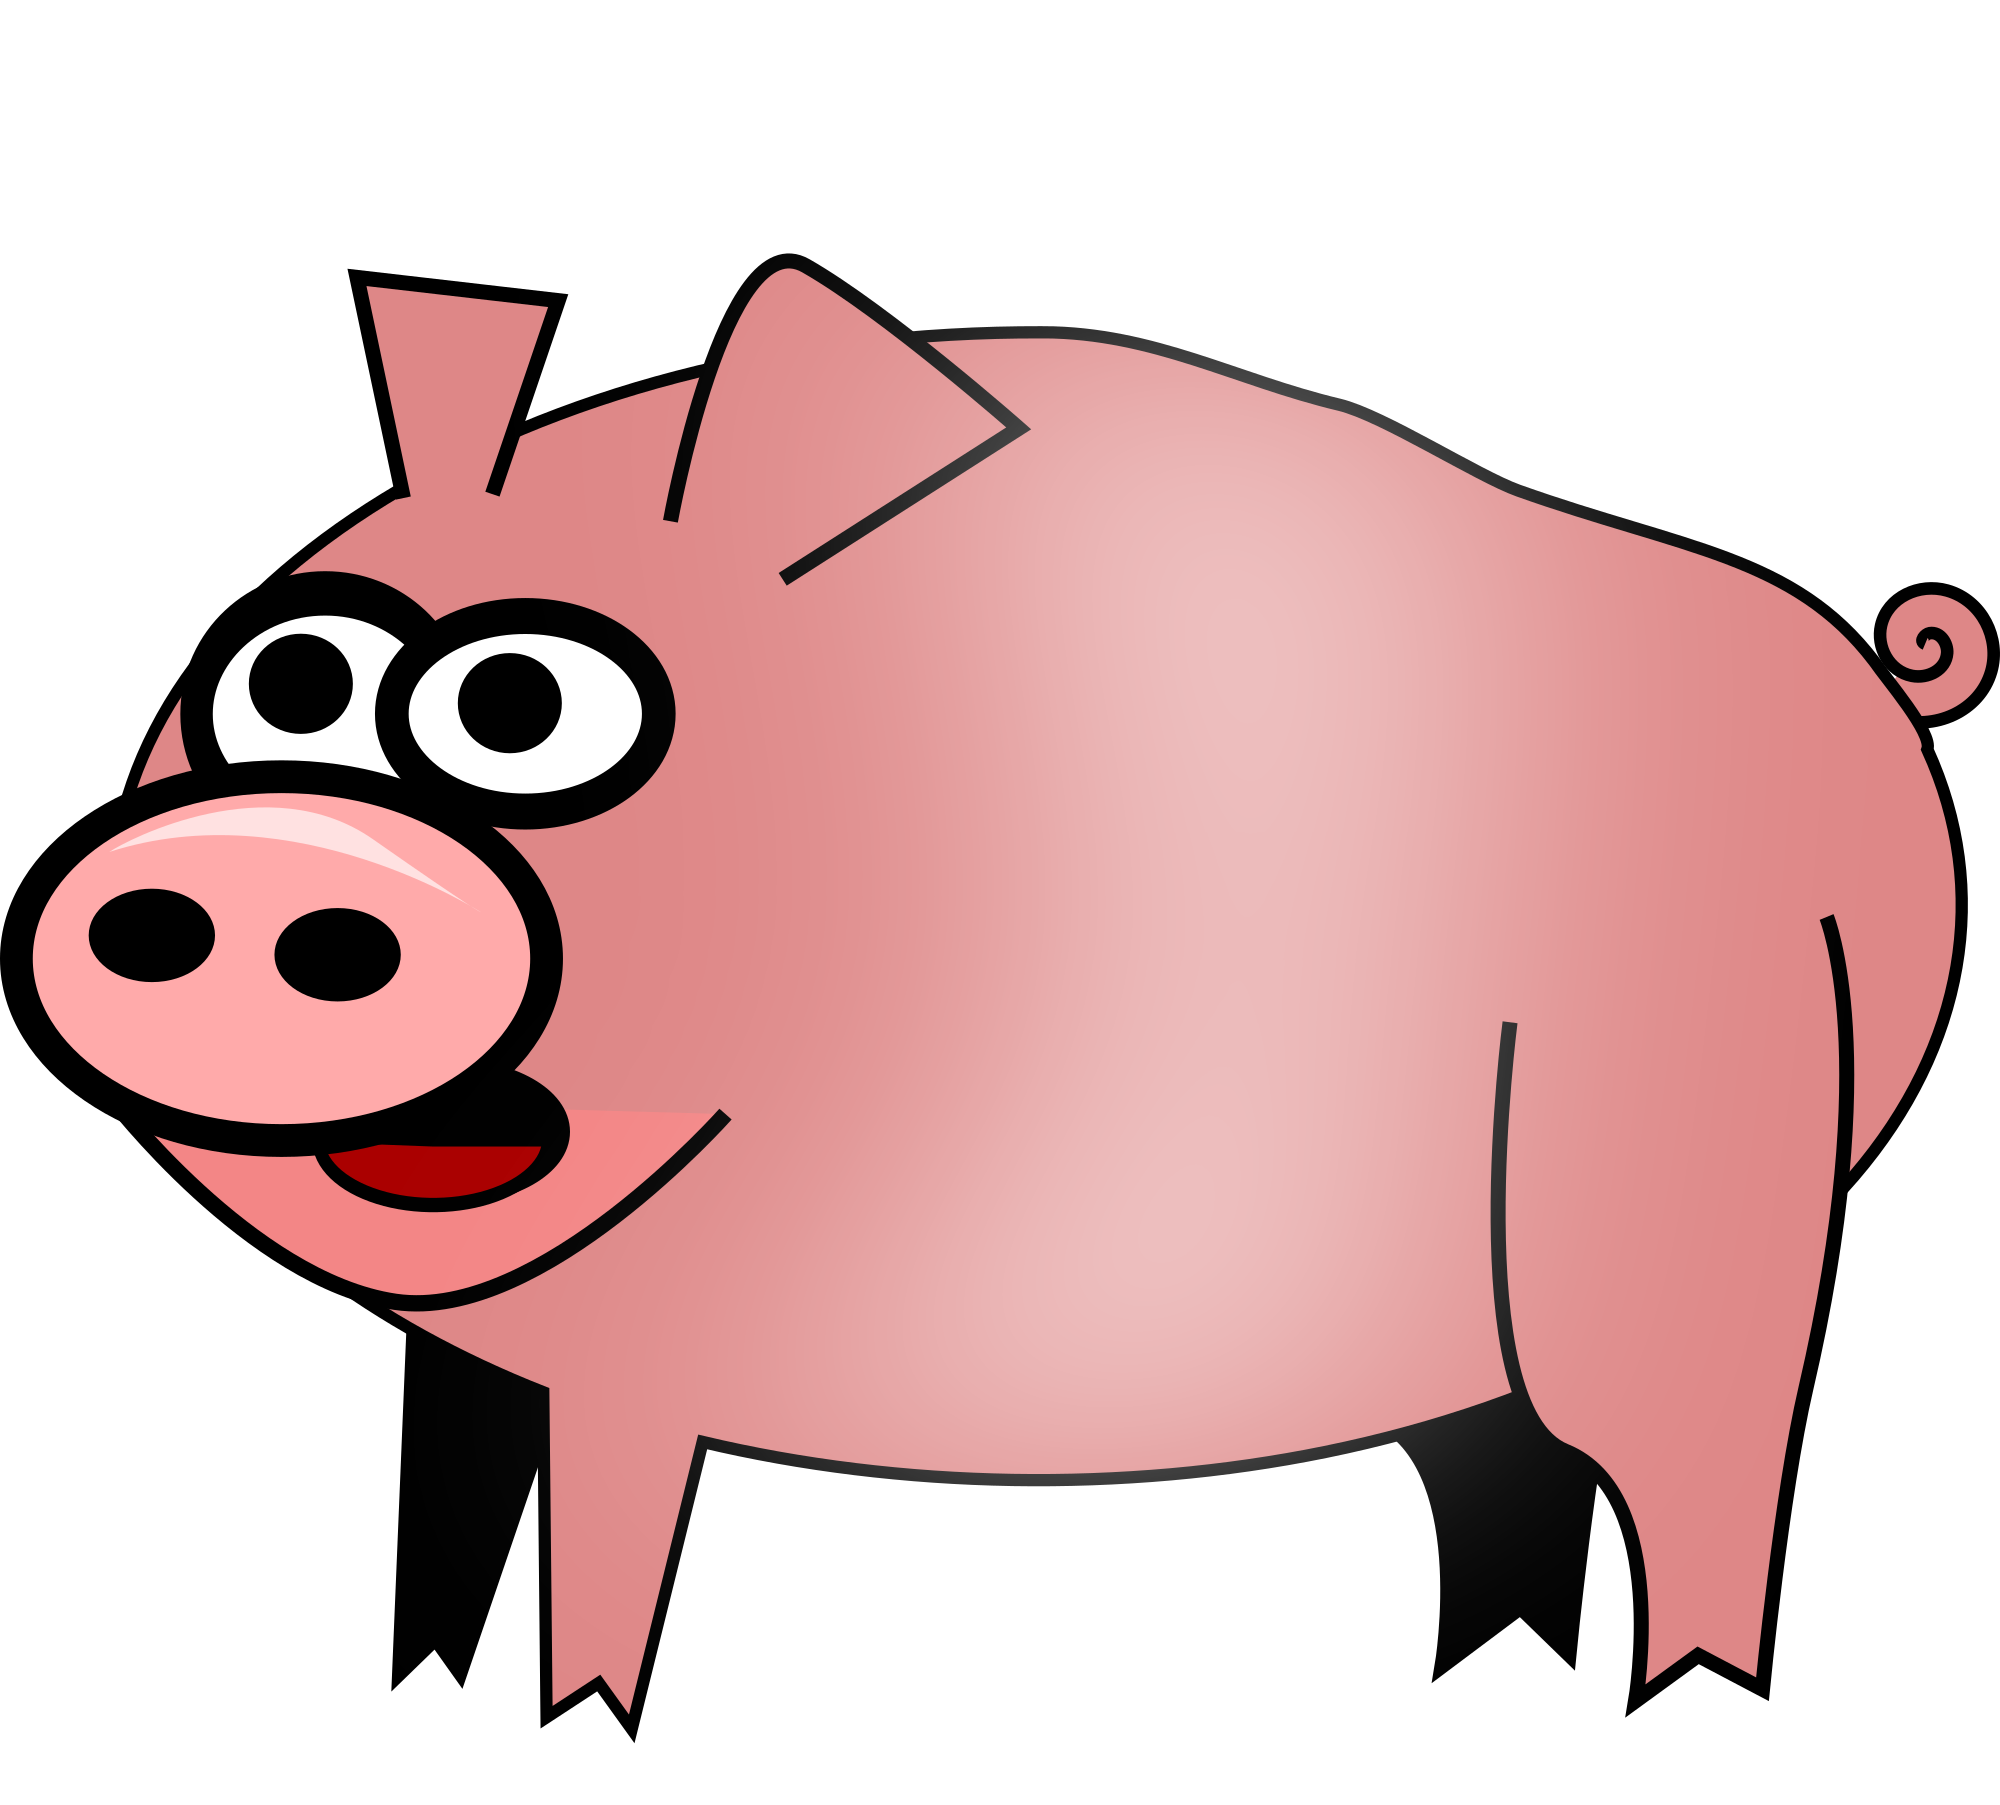 2000x1805 Cartoon Pig Clip Art Free Vector For Free Download About Free